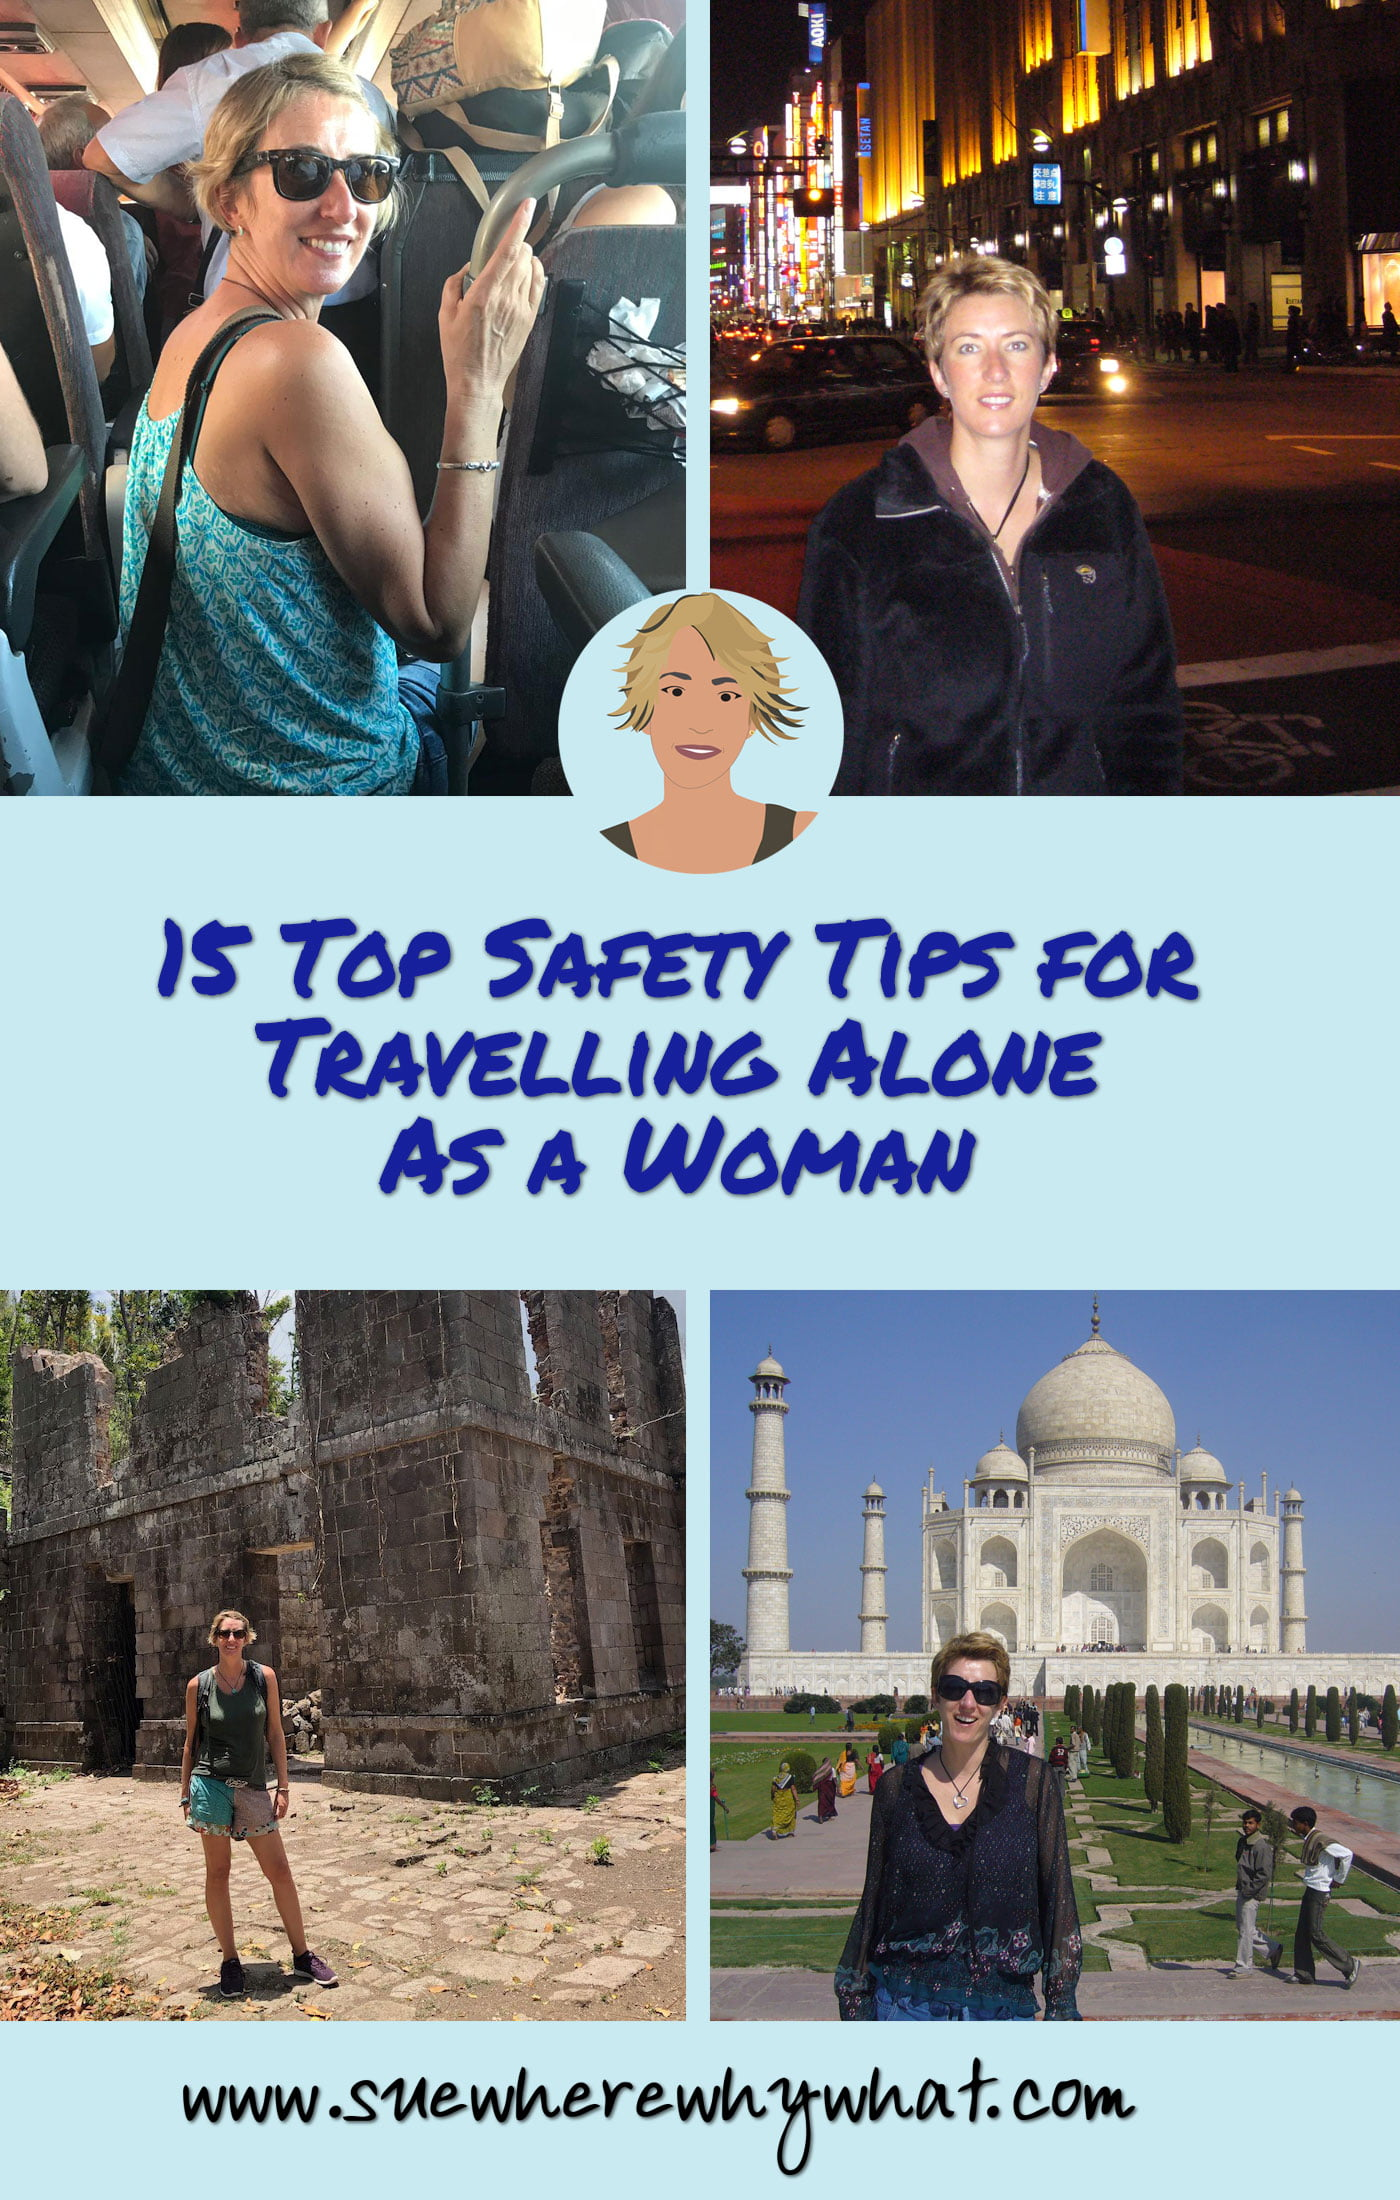 15 Top Safety Tips for Travelling Alone As a Woman